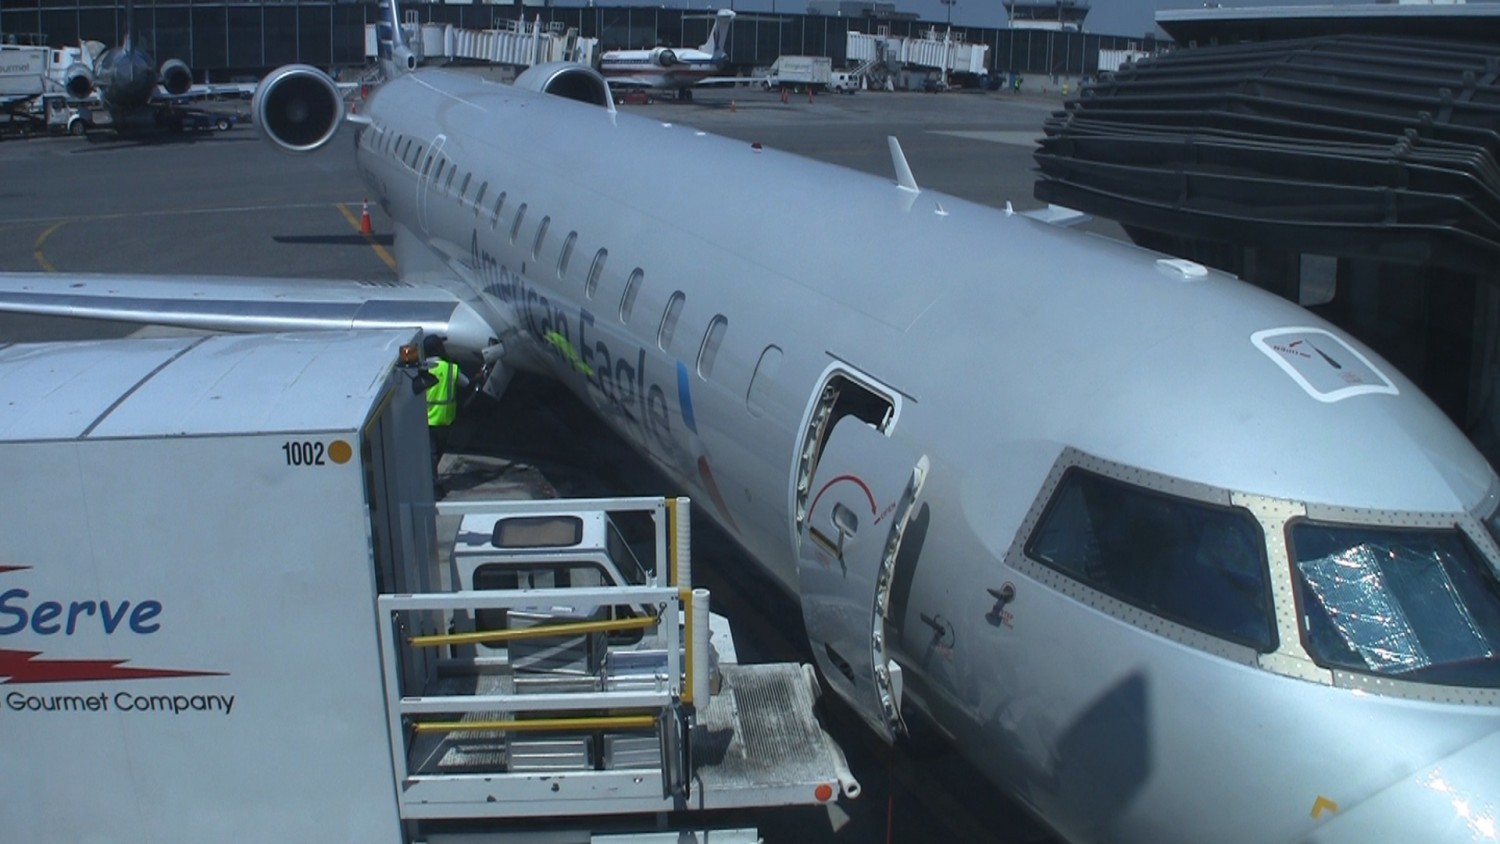 Video American Airlines Crj 700 First Class Seat 1a